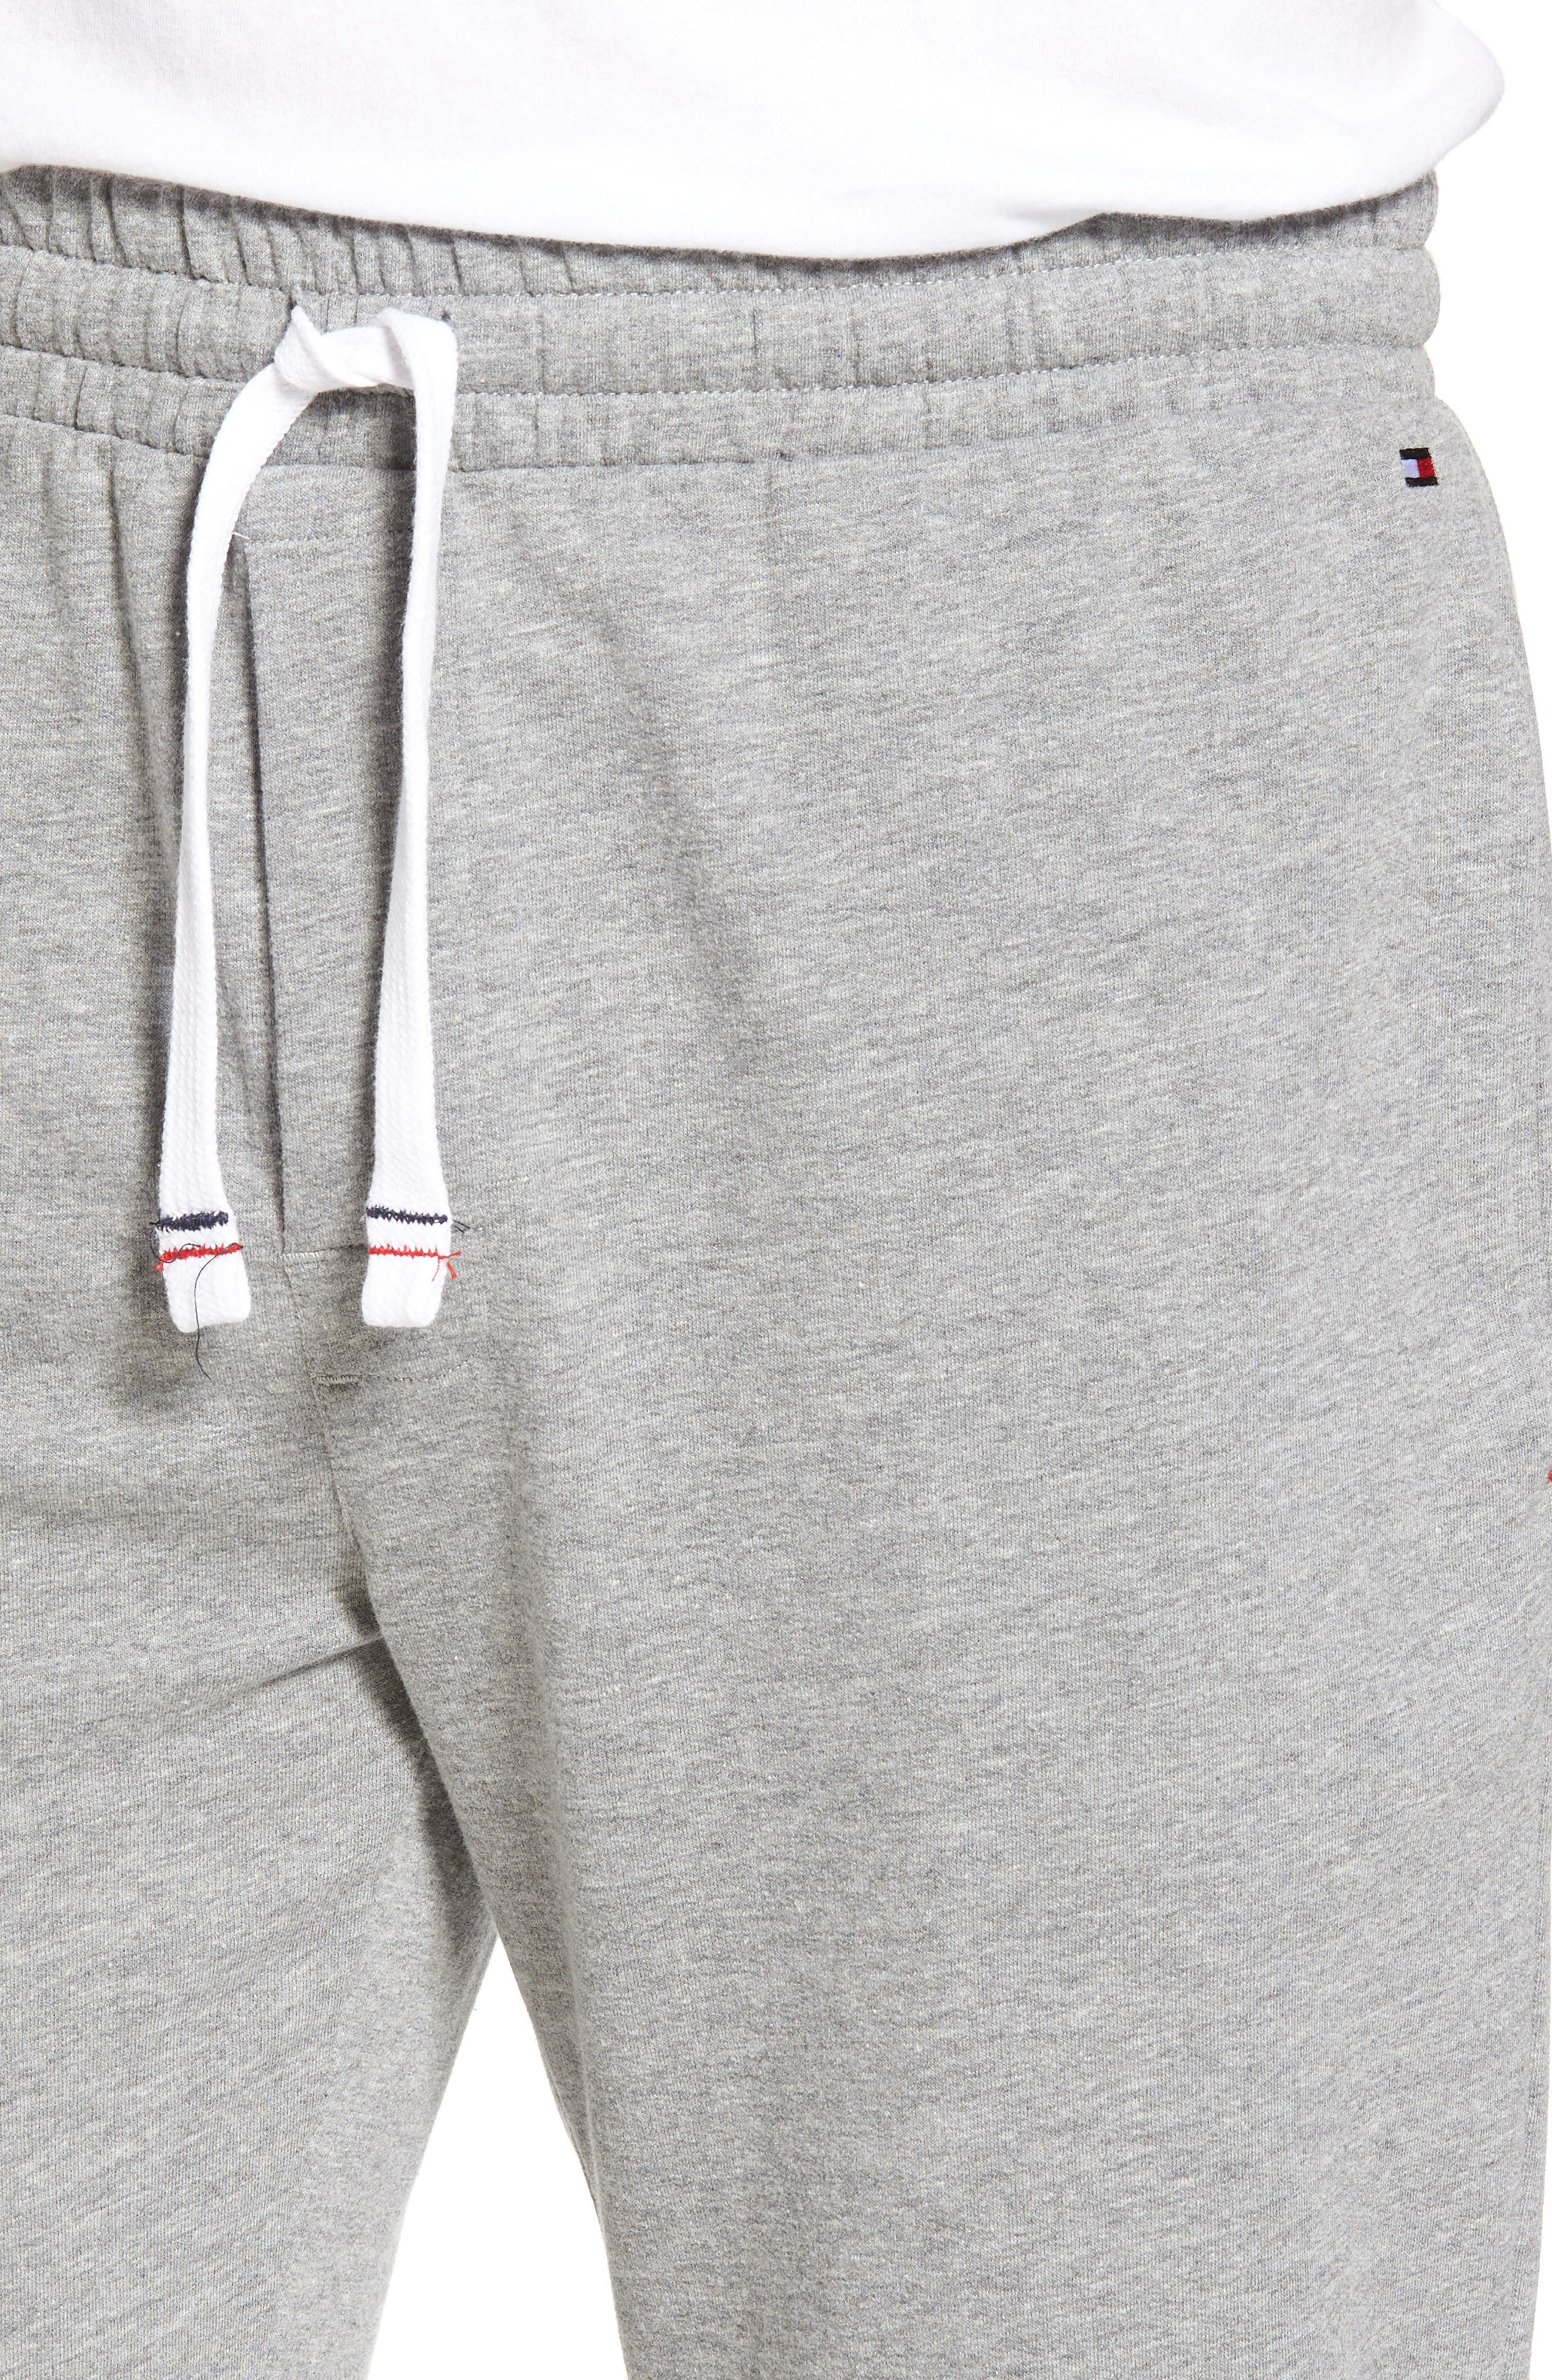 Jogger Lounge Pants,                             Alternate thumbnail 4, color,                             Grey Heather